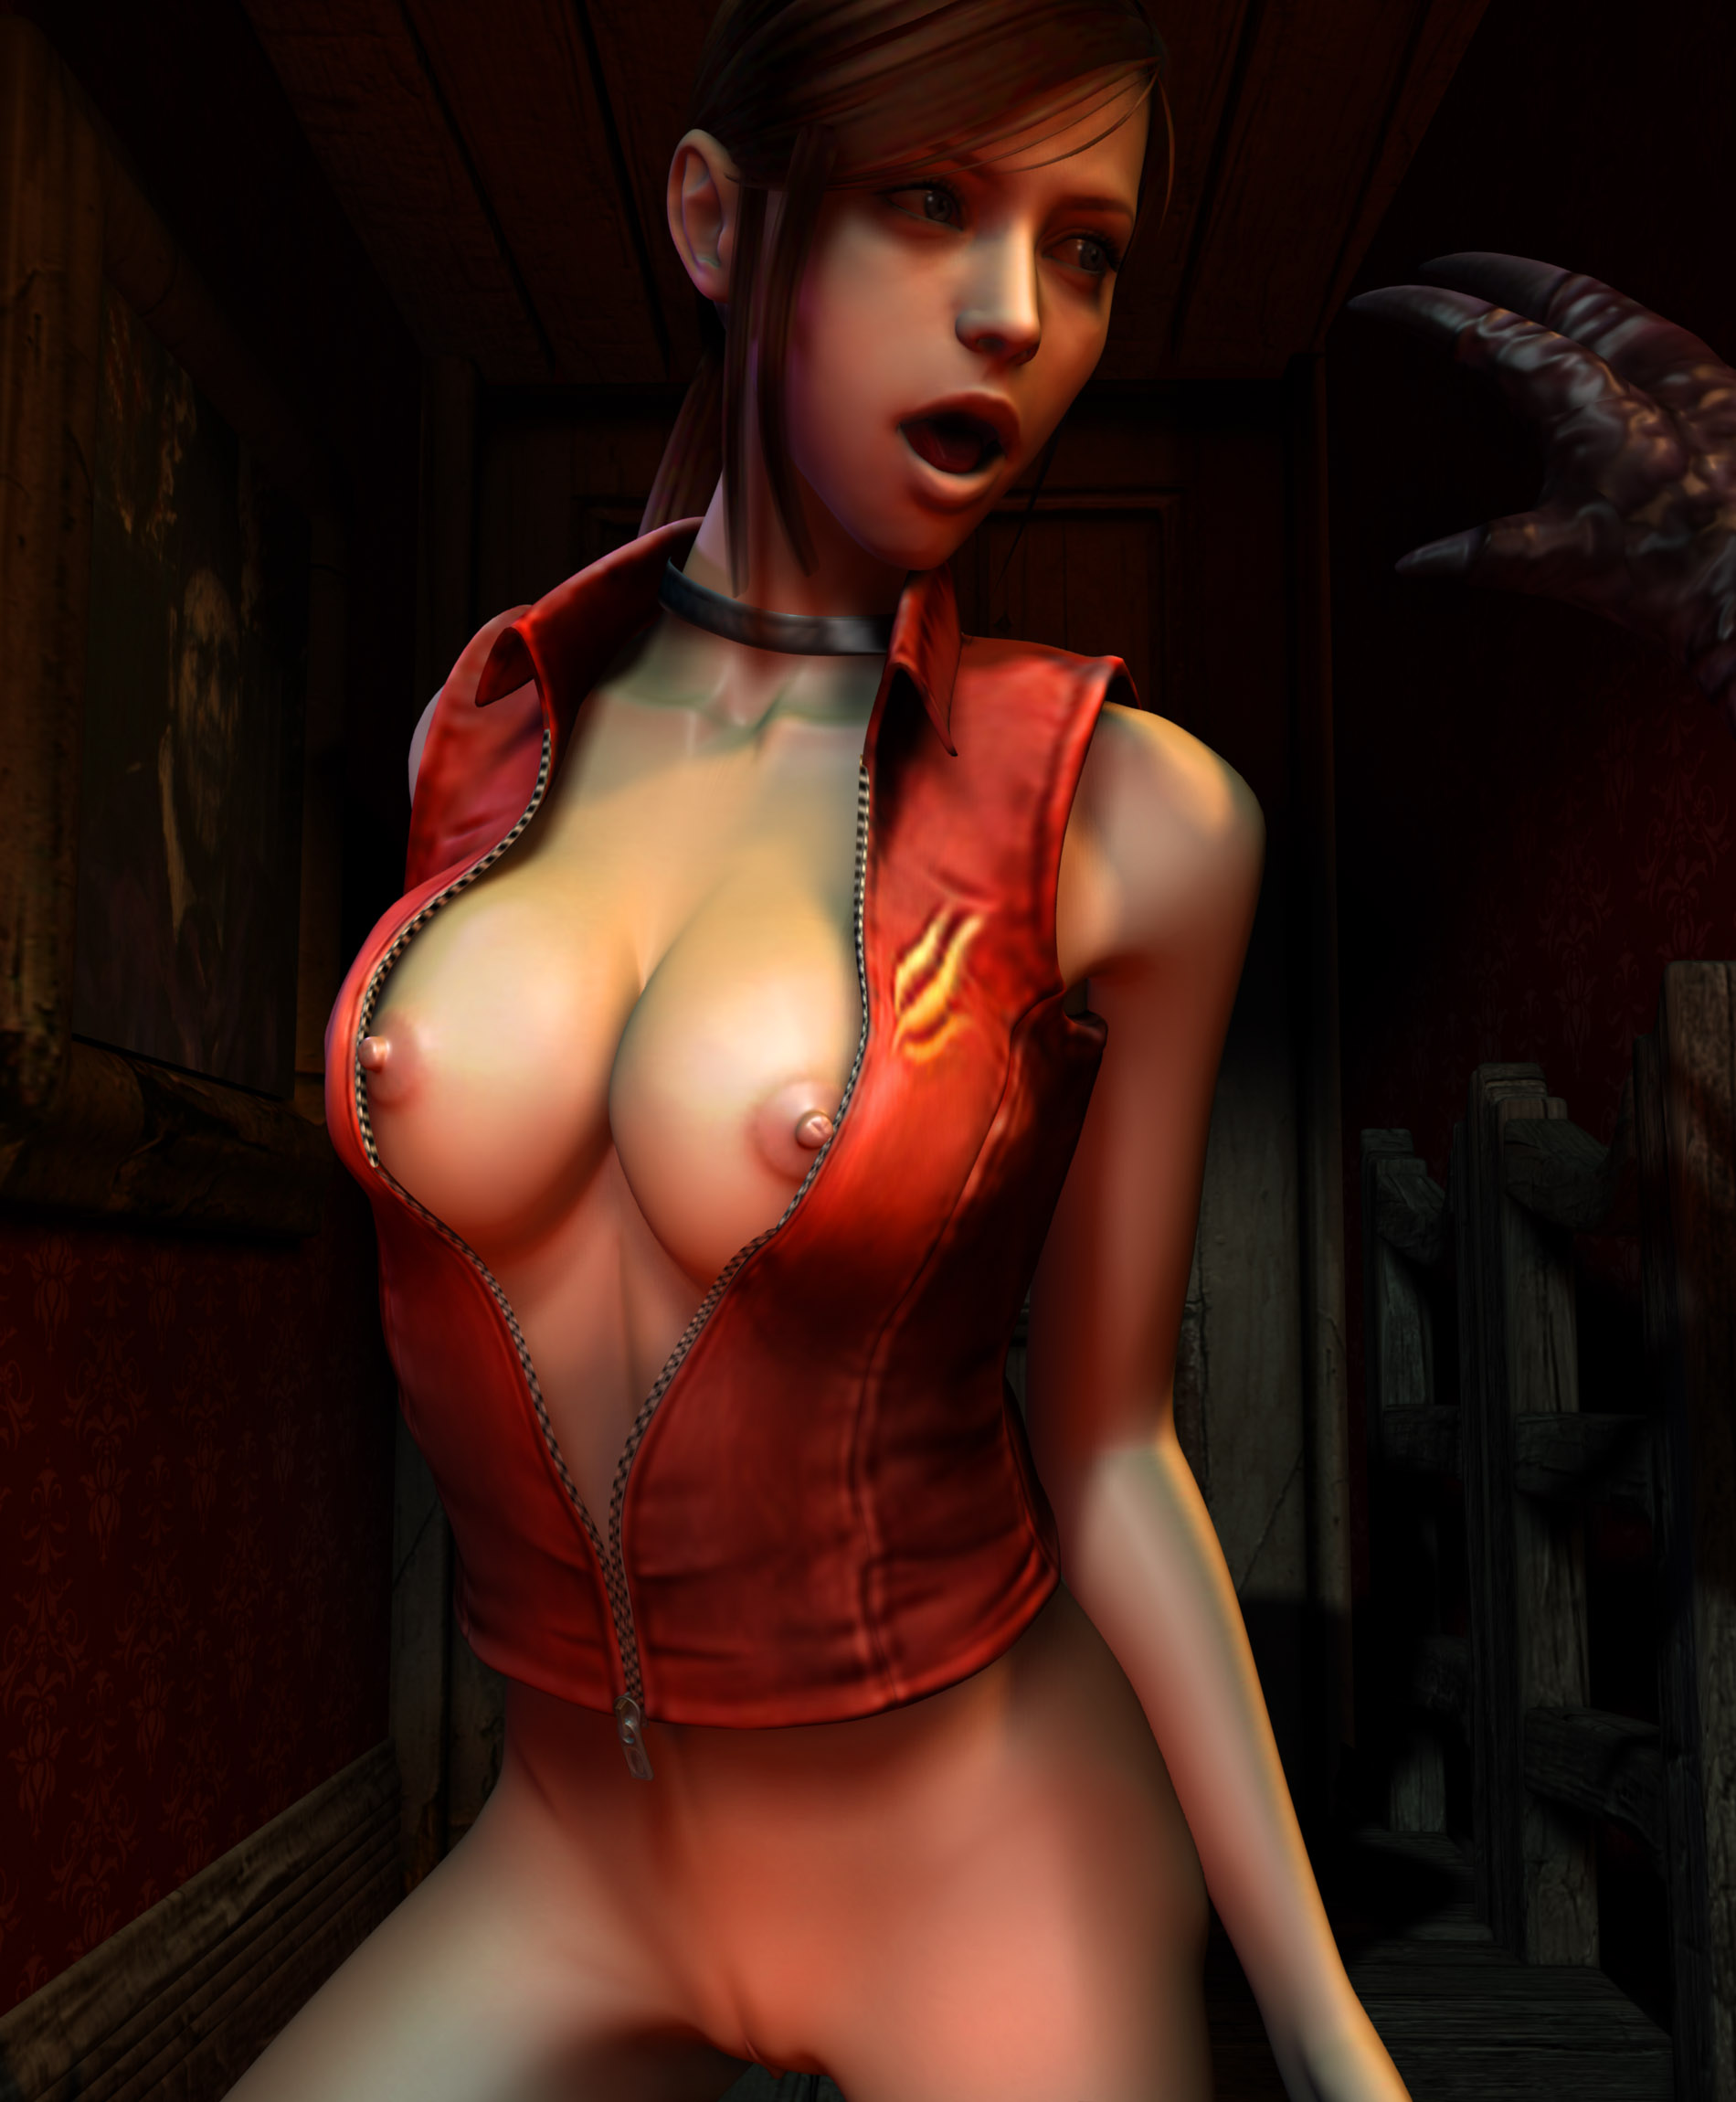 Resident Evil Hentai 3D Beautiful devious collection 3 favouritesminamino23 on deviantart